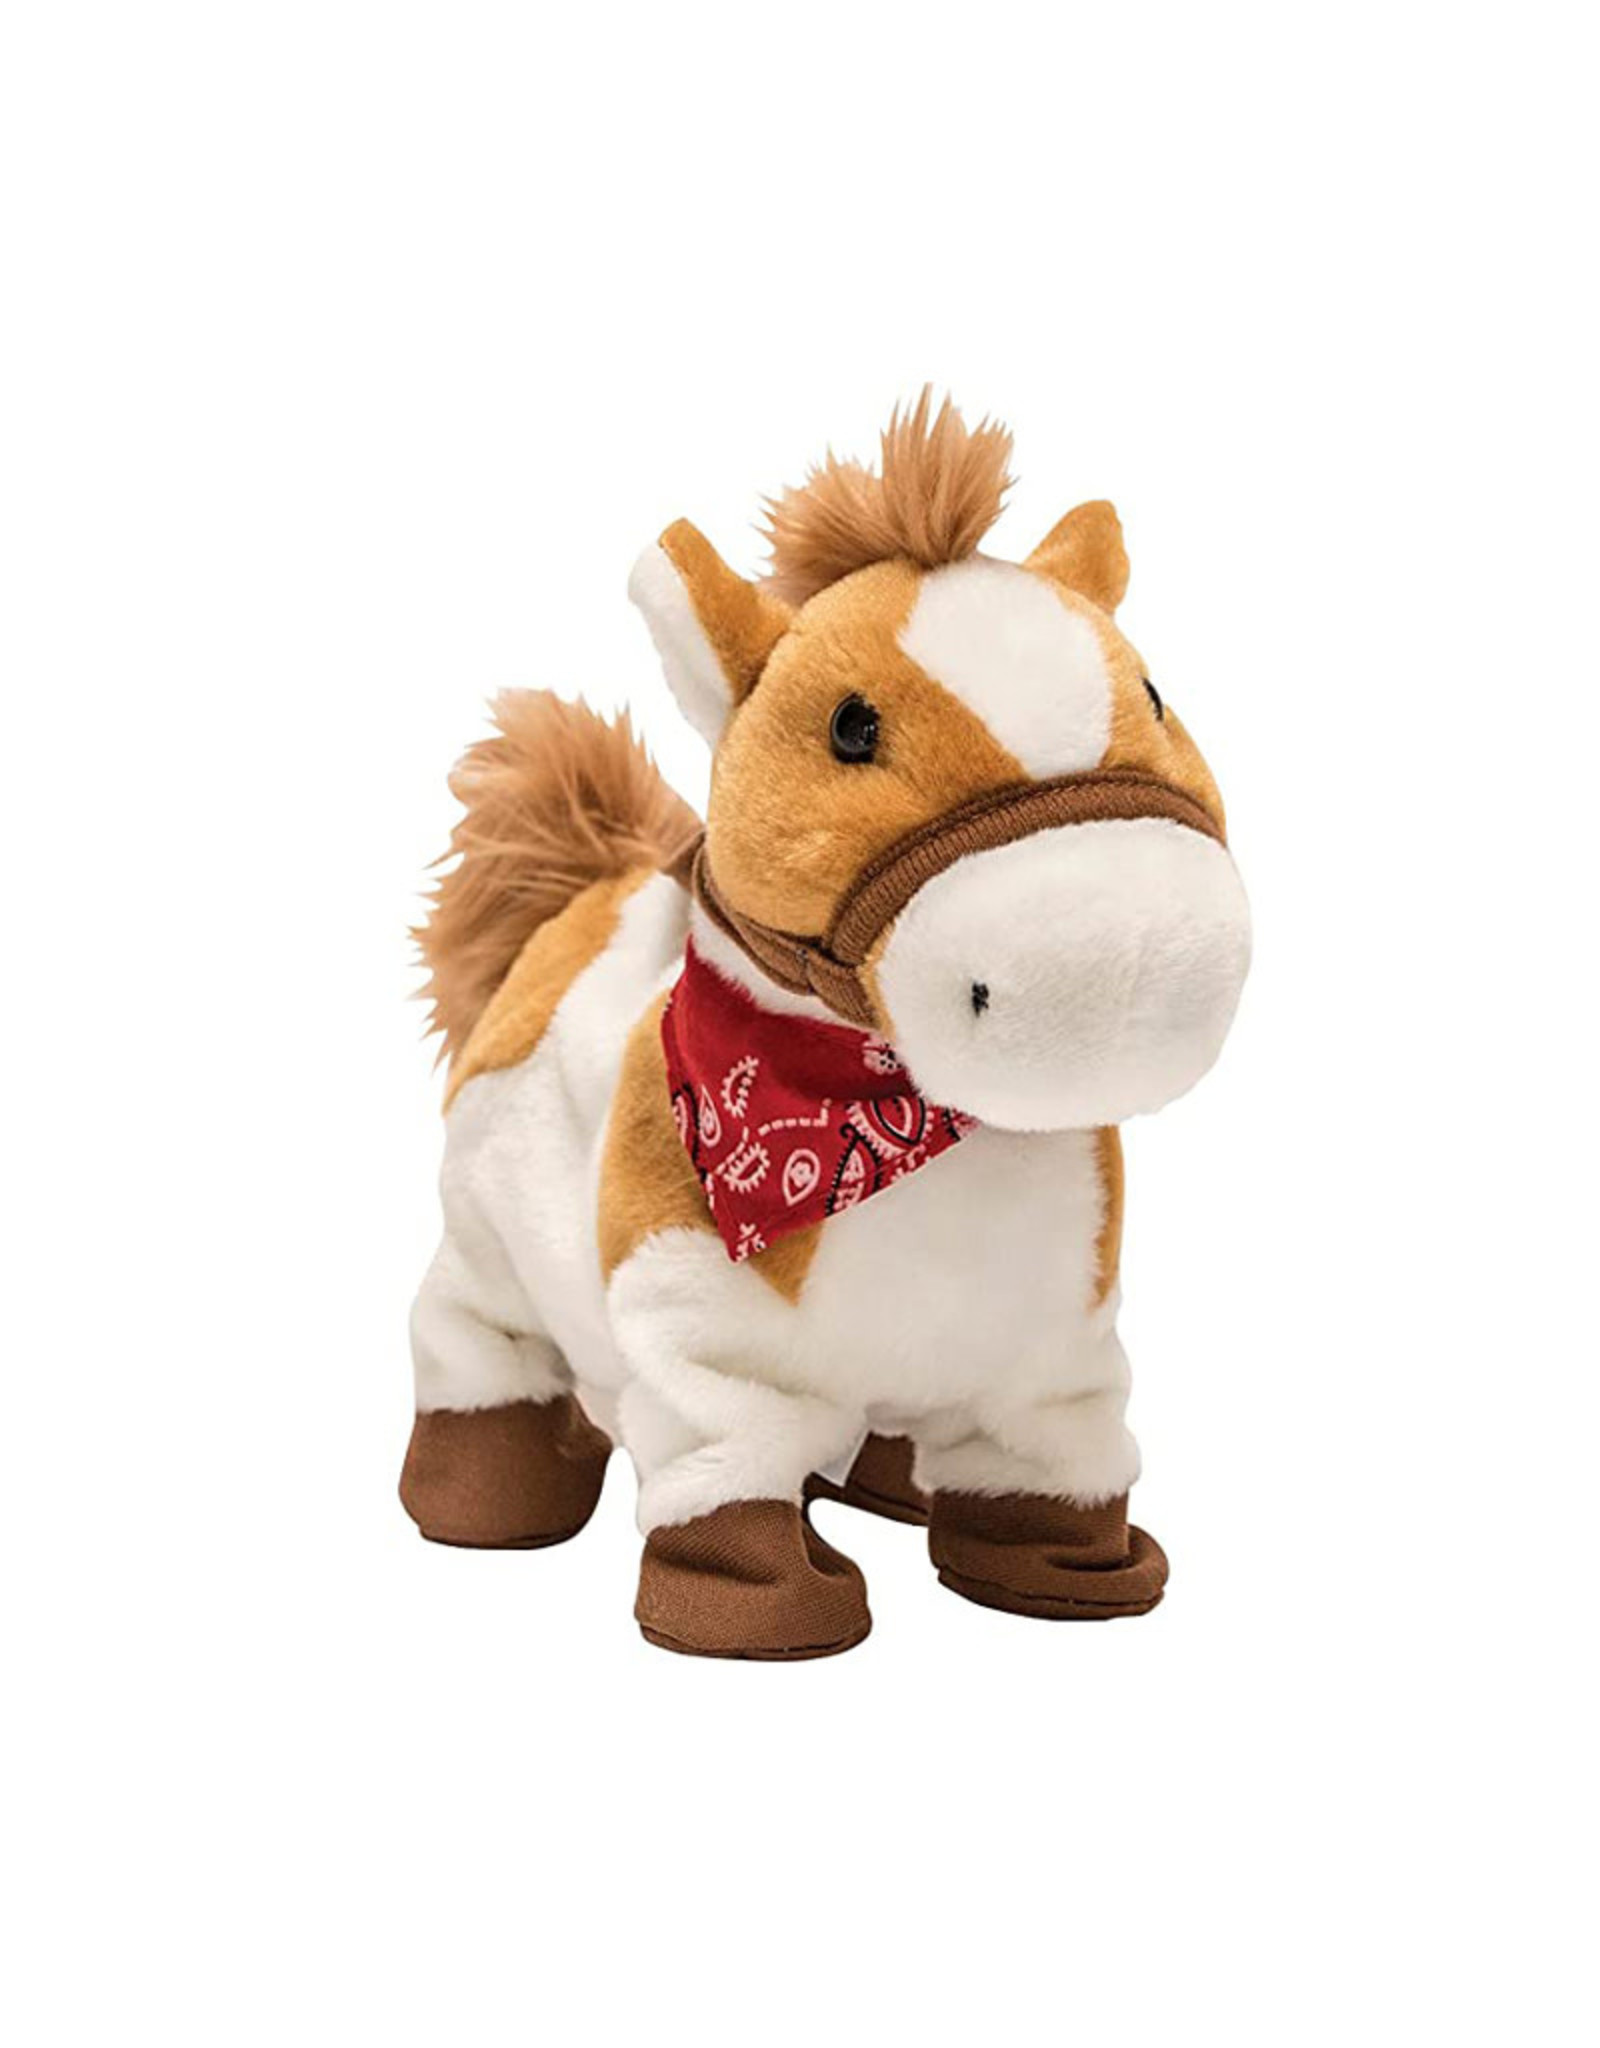 Singing Horse ( Cuddle Barn ) William Tell Overture